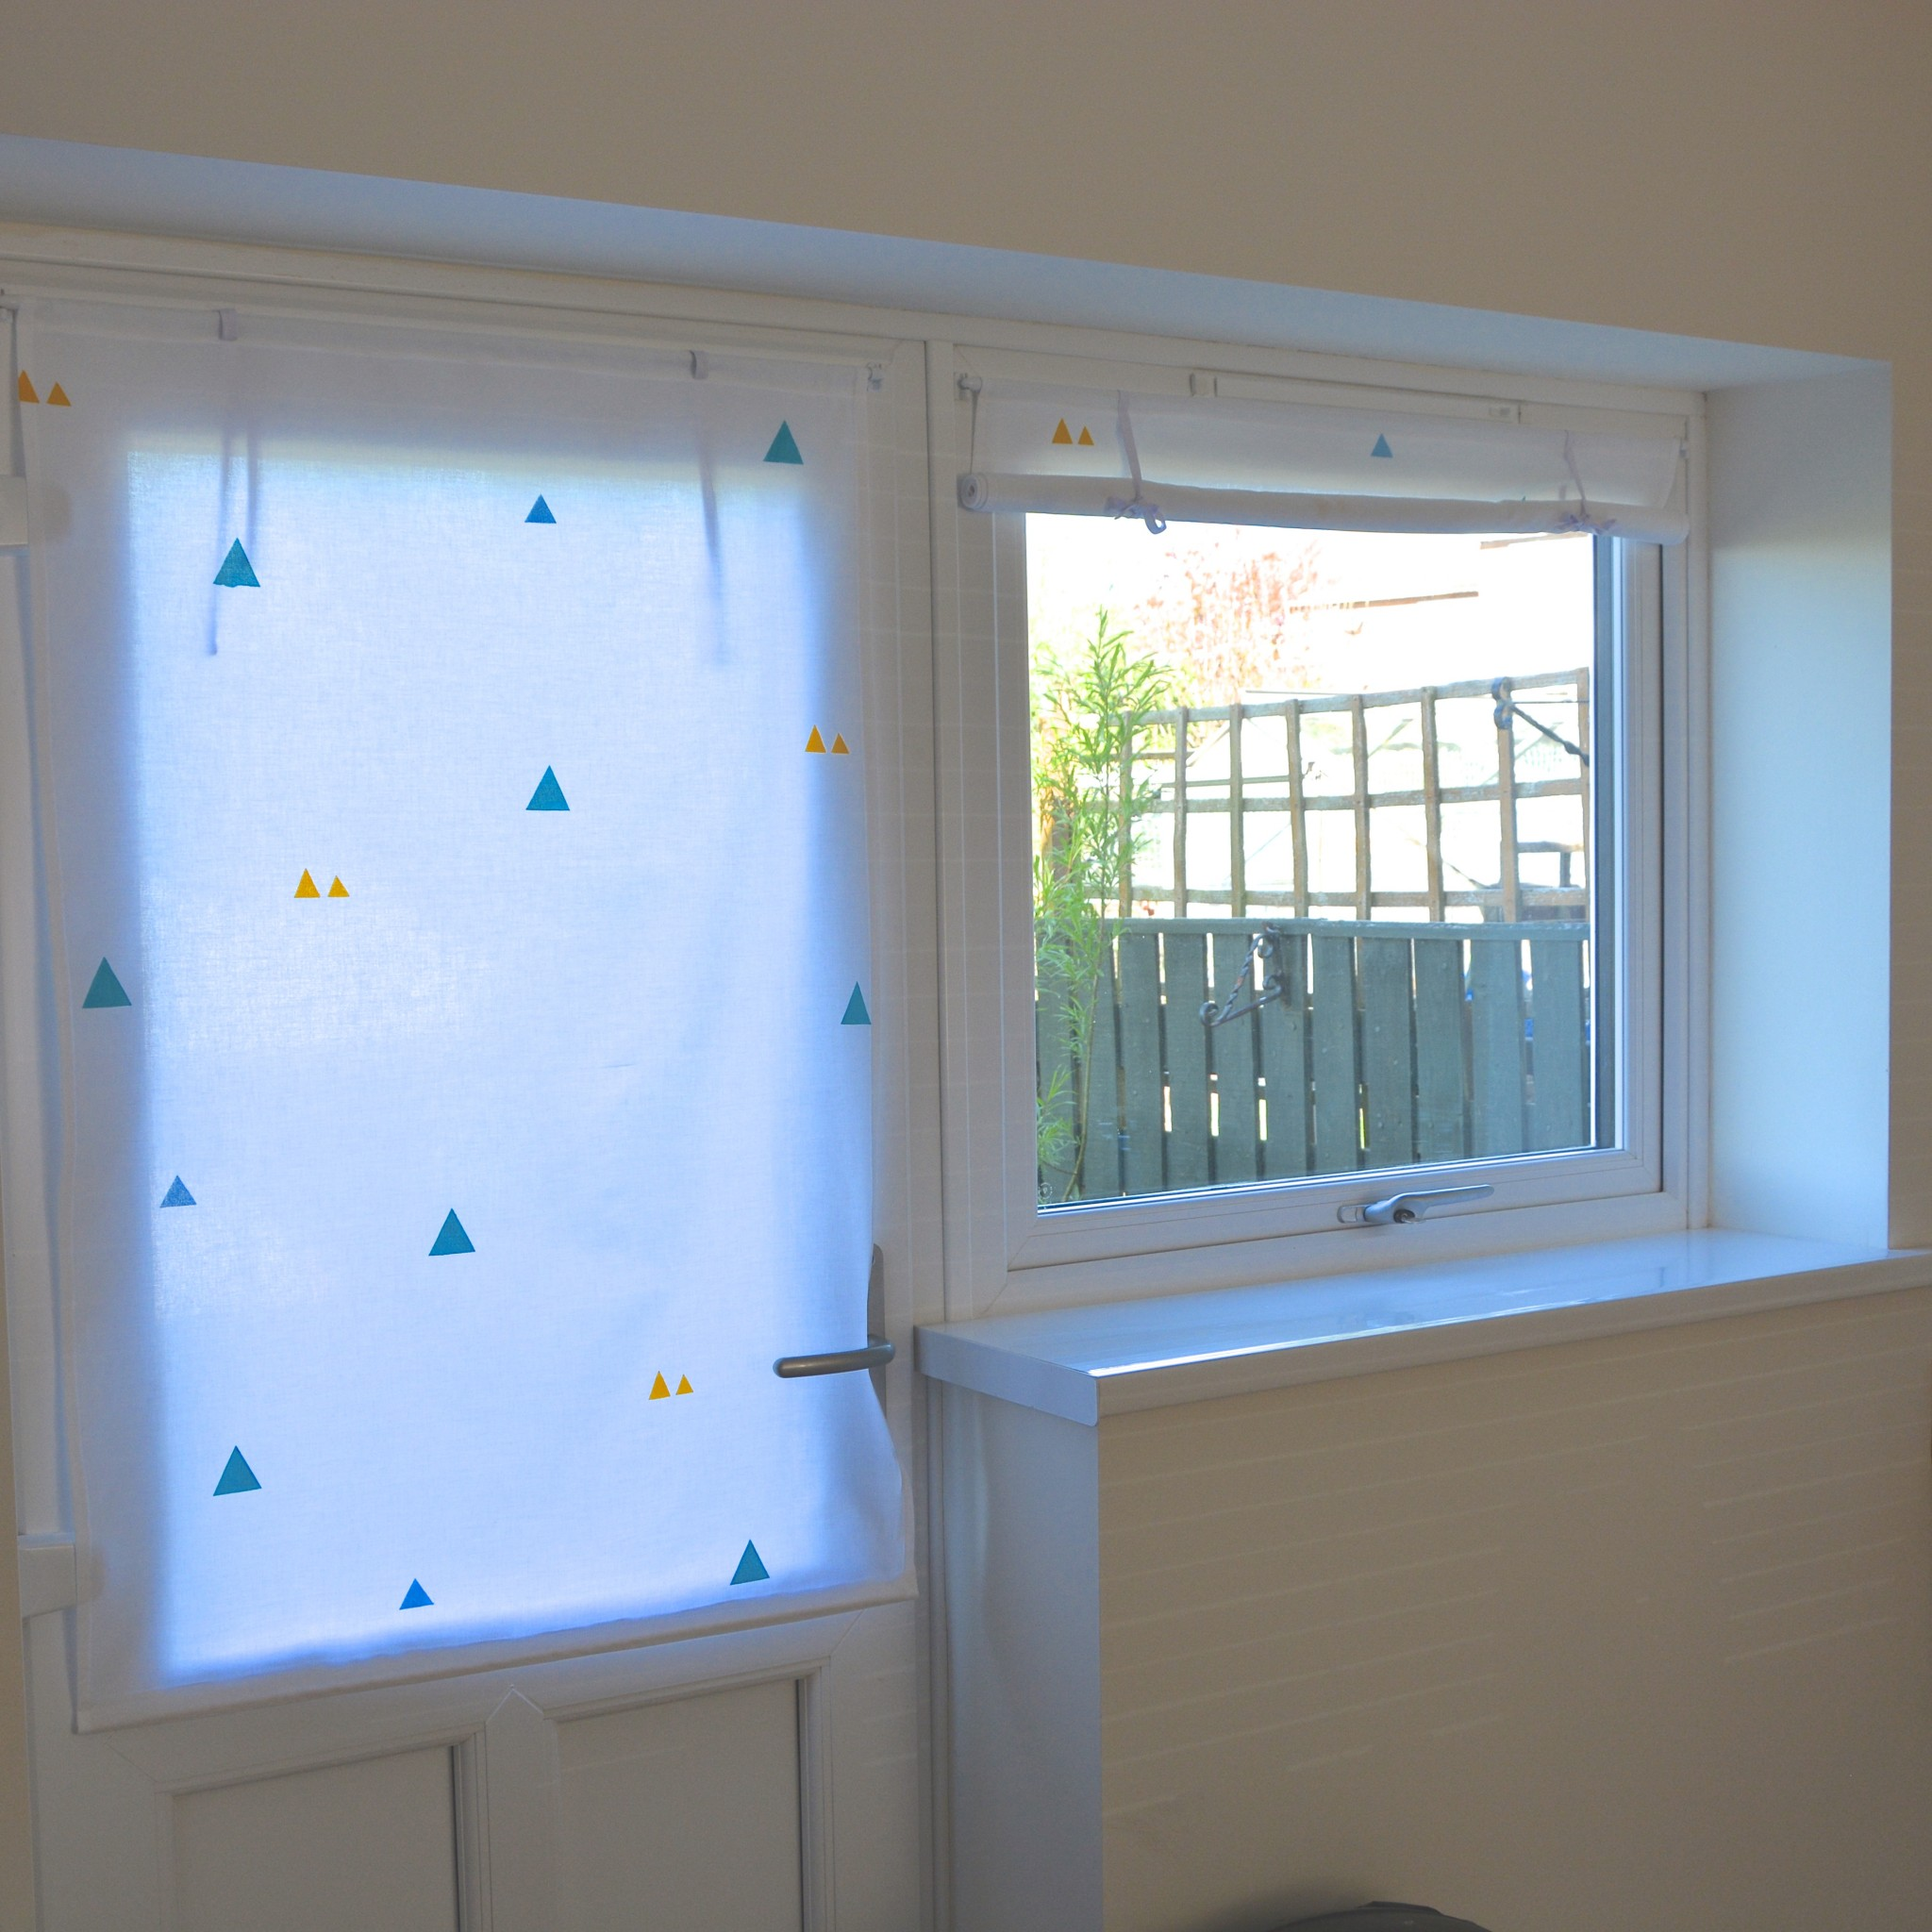 Fabric roll-up blinds | Hello! Hooray!